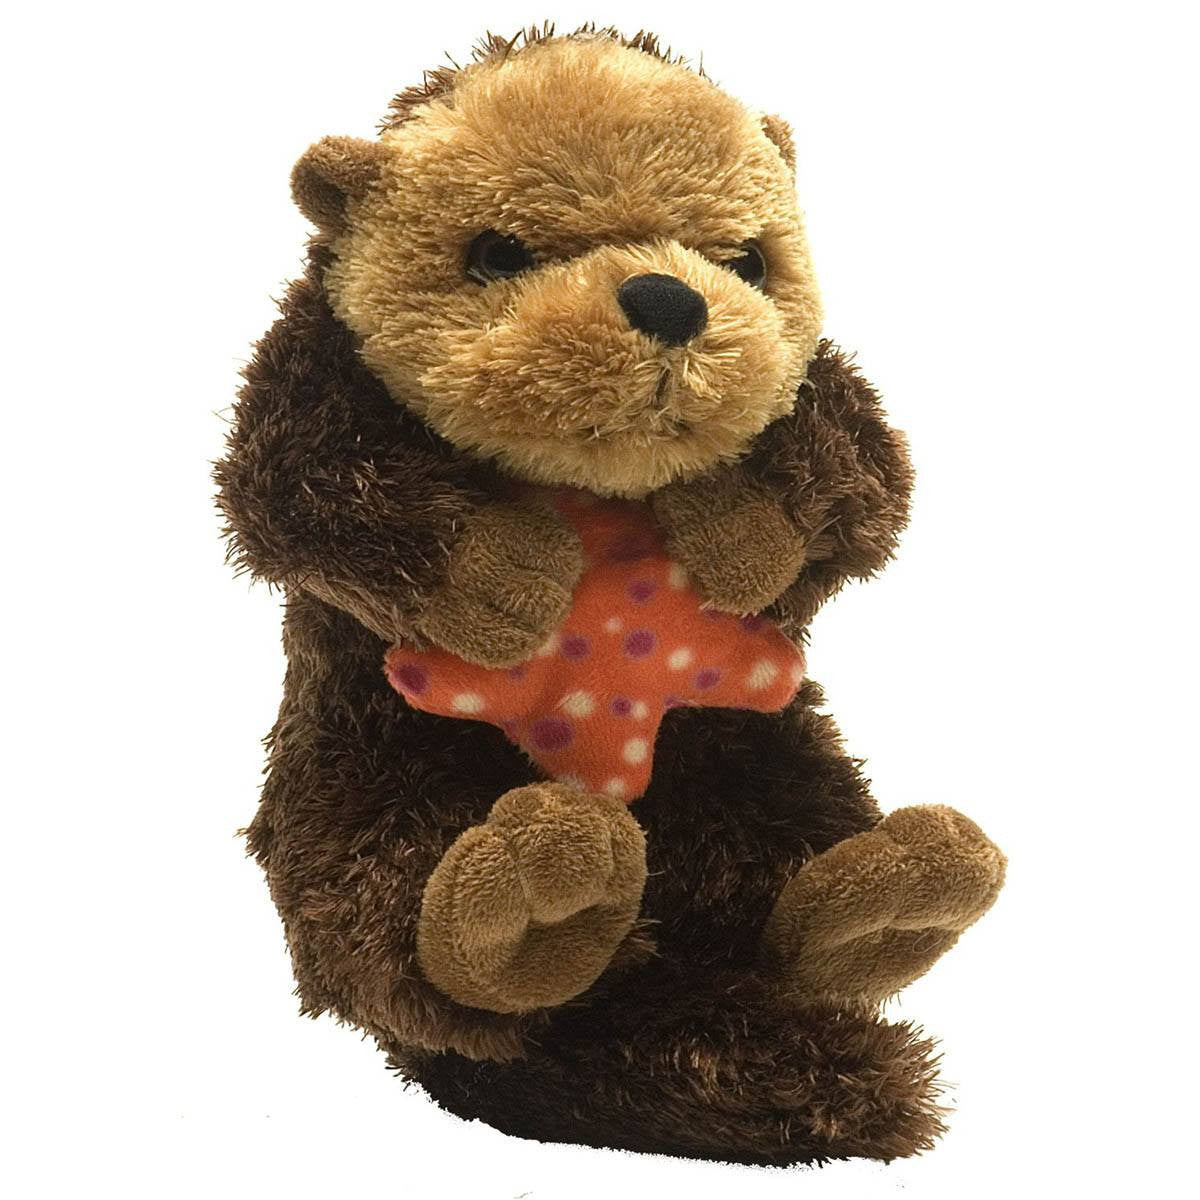 Otter Stuffed Animal Kids Toys Otter Hug Ems Plush Toy Radar Toys